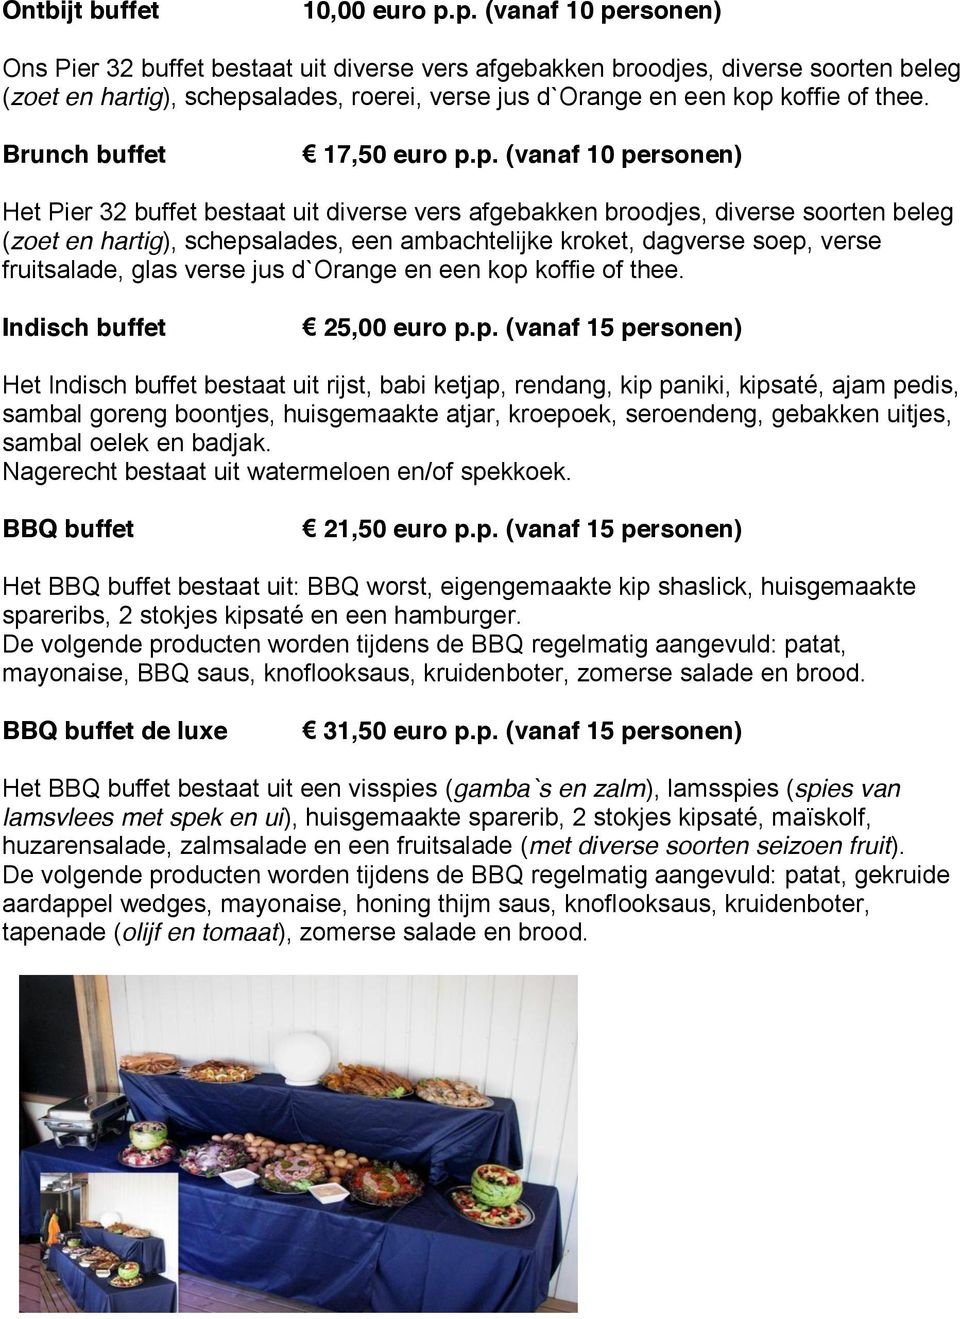 Brunch buffet 17,50 euro p.